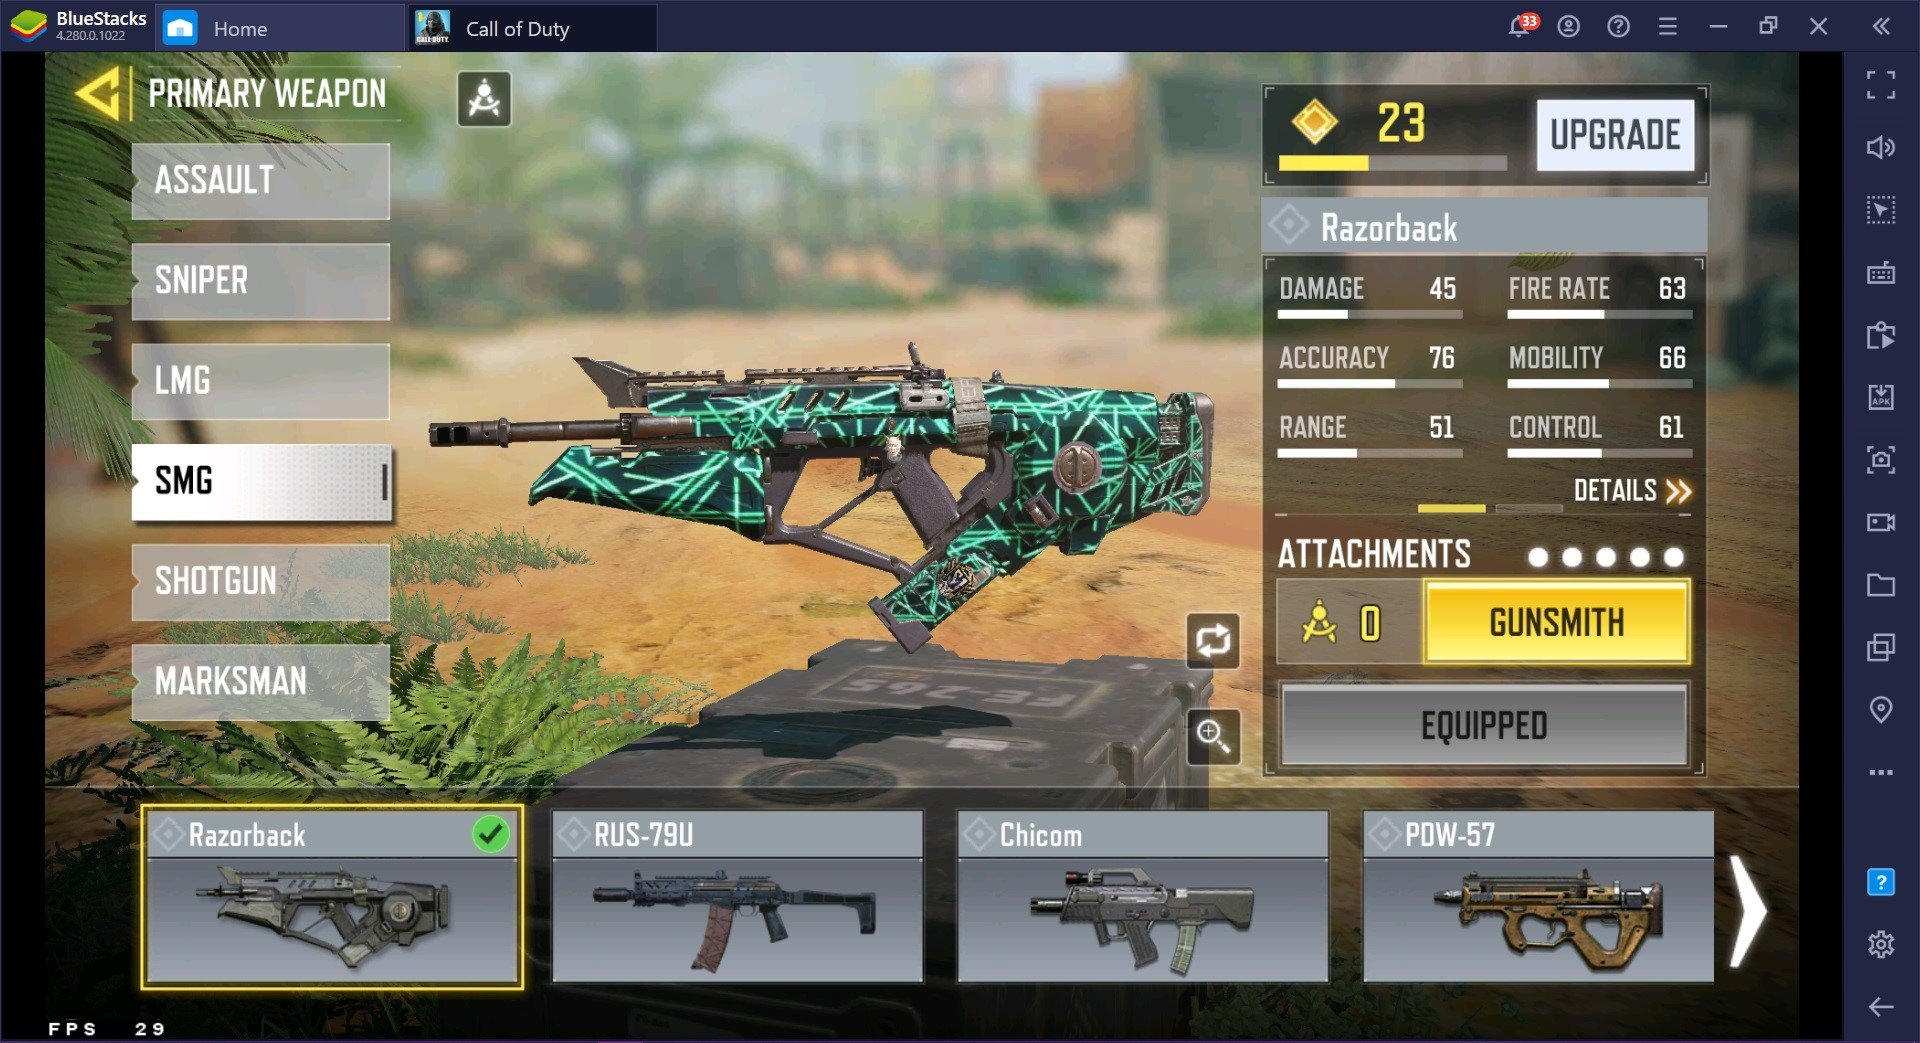 Call of Duty: Mobile Season 3 SMG Gun Guide For Multiplayer Ranked Games